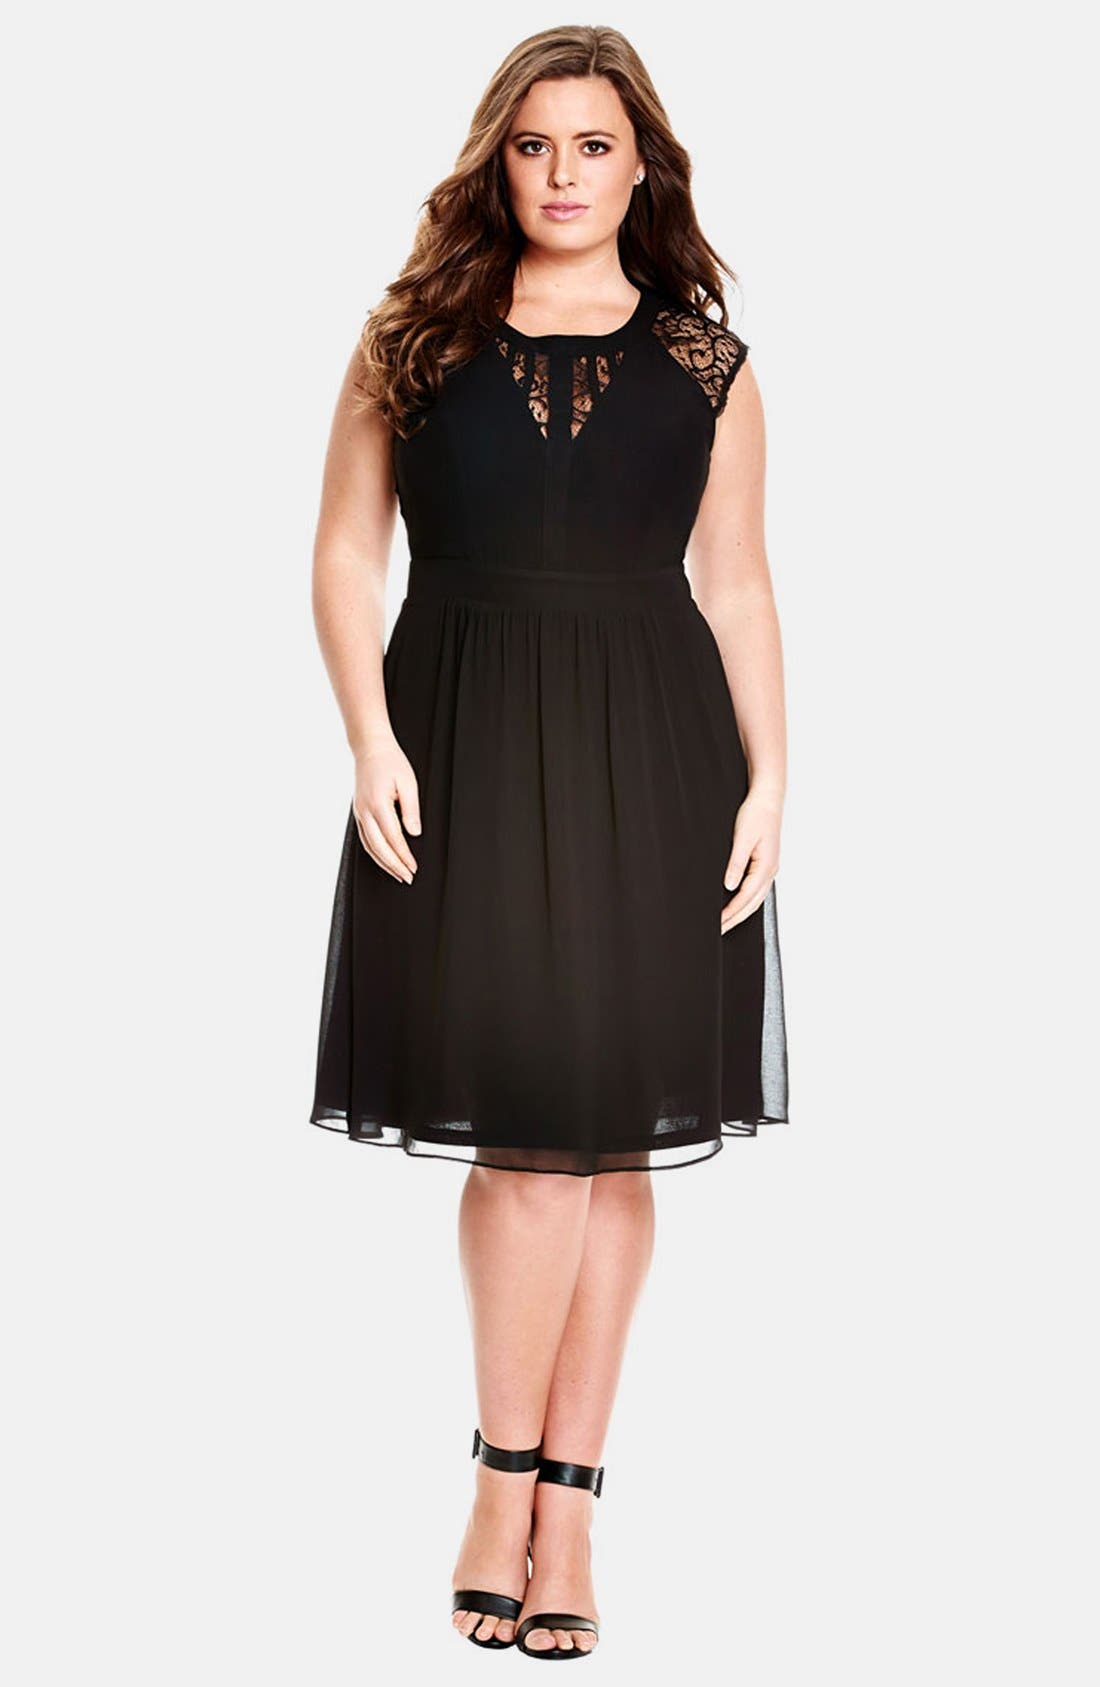 Plus Size City Chic Dark Romance Lace Detail Dress